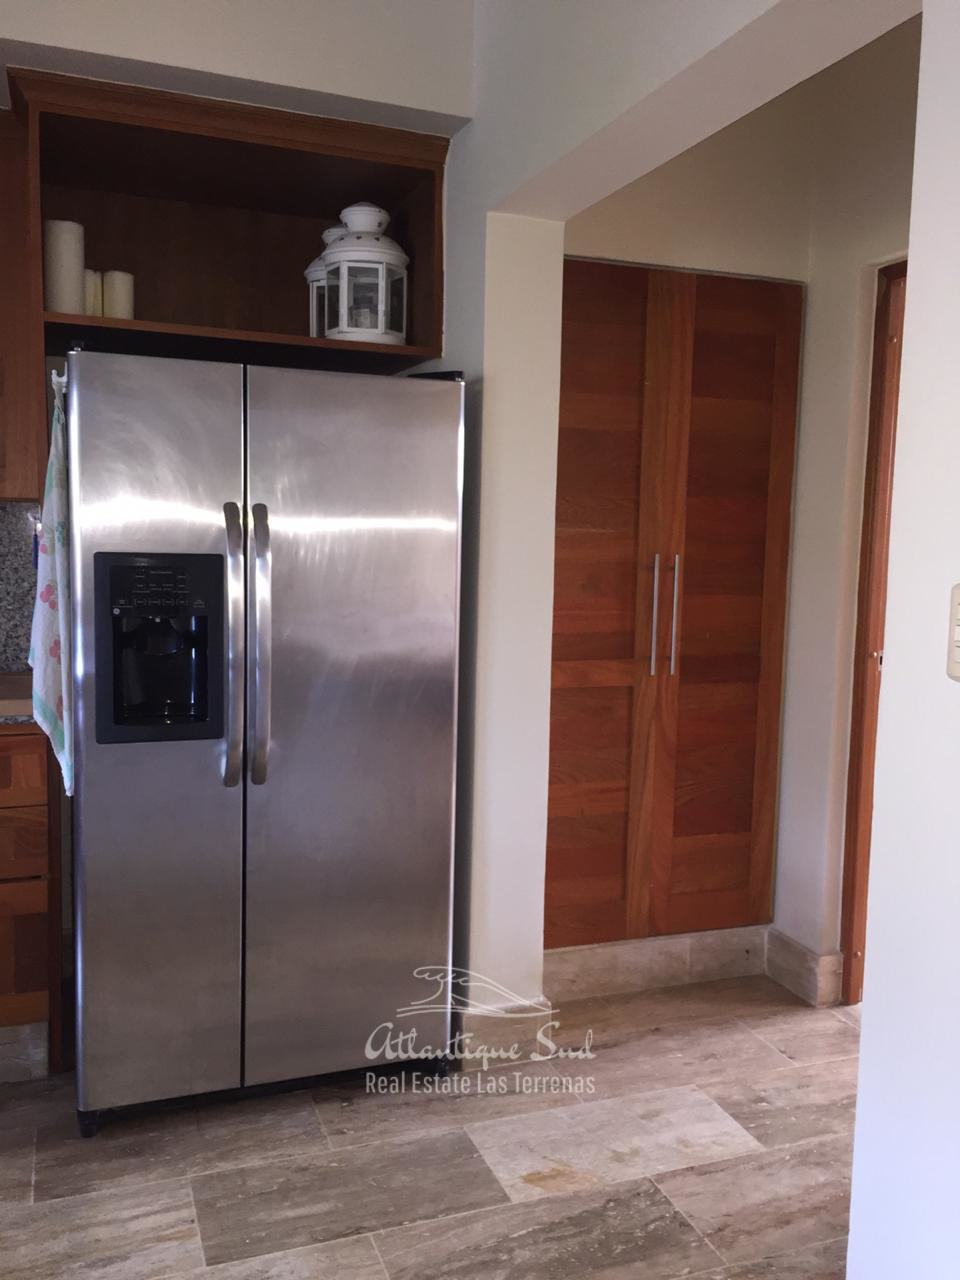 Spacious condo in modern residential central location Real Estate Las Terrenas Atlantique Sud Dominican Republic13.jpeg